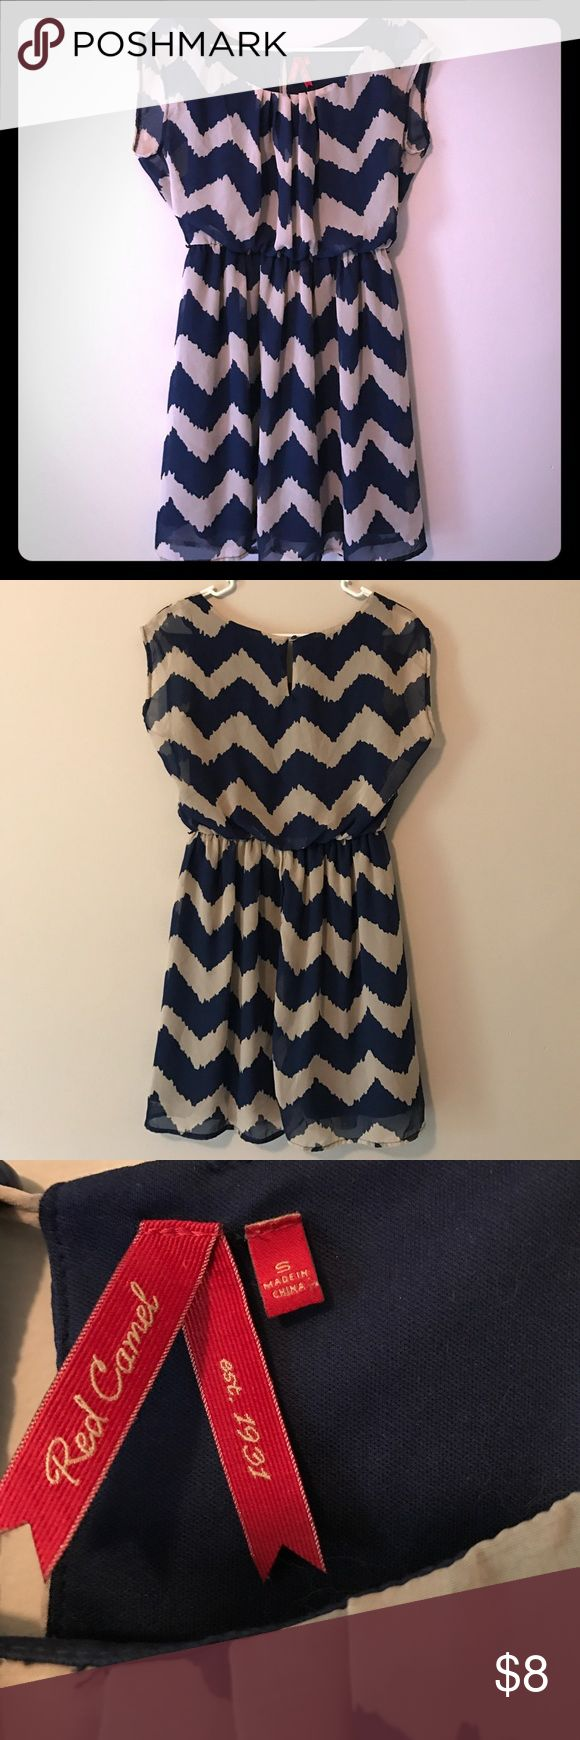 Women's Chevron Dress - with underskirt Cute Women's Red Camel Chevron Dress in Navy and Tan! Short sleeve with a navy underskirt for full coverage! Gathers at the waist to flatter your figure - used condition with one small pick shown in picture Red Camel Dresses Midi